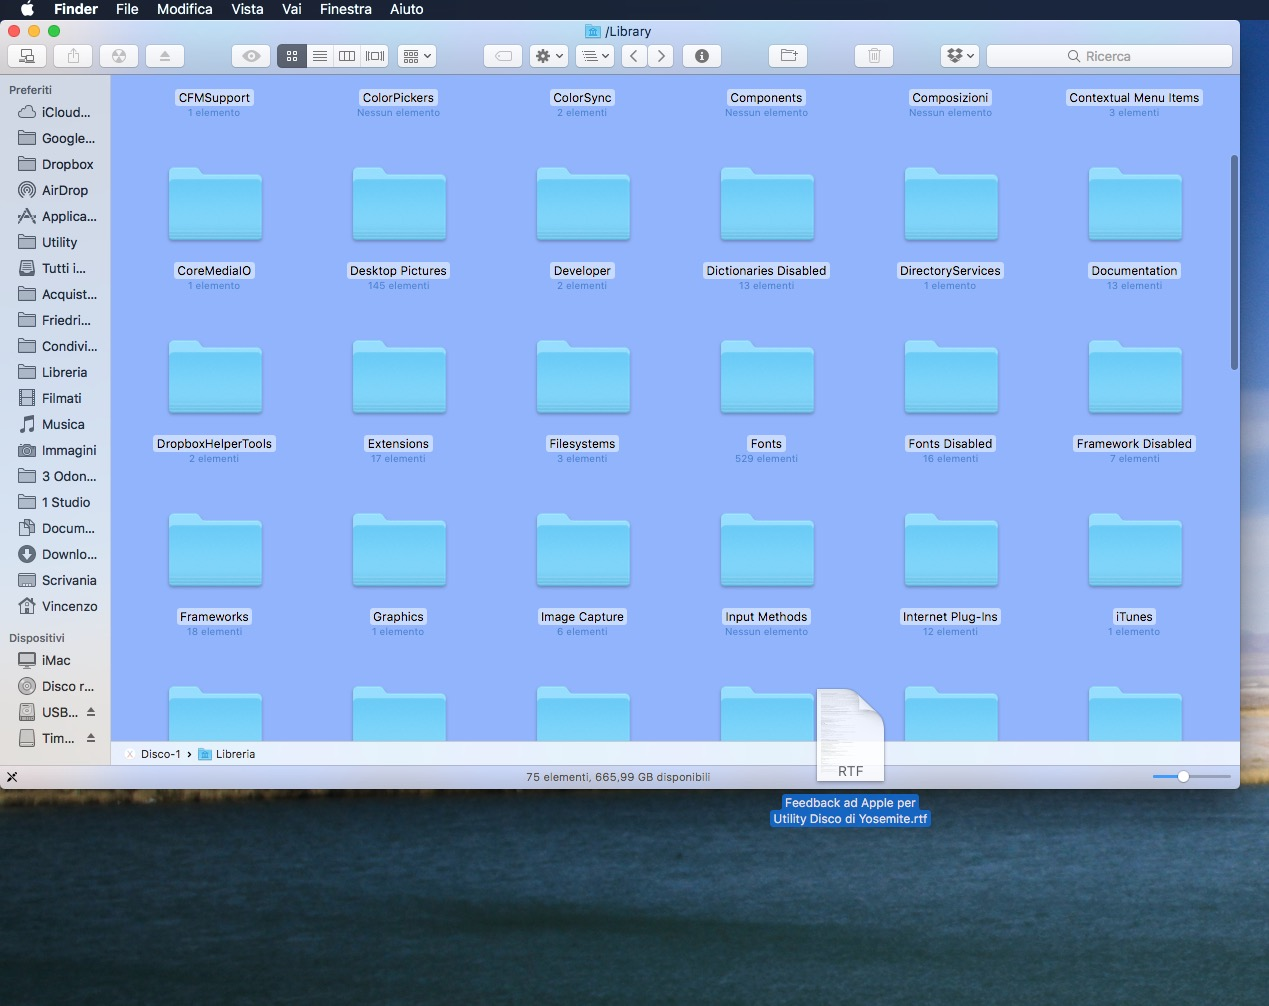 Finder drag & drop too slow and freez… - Apple Community